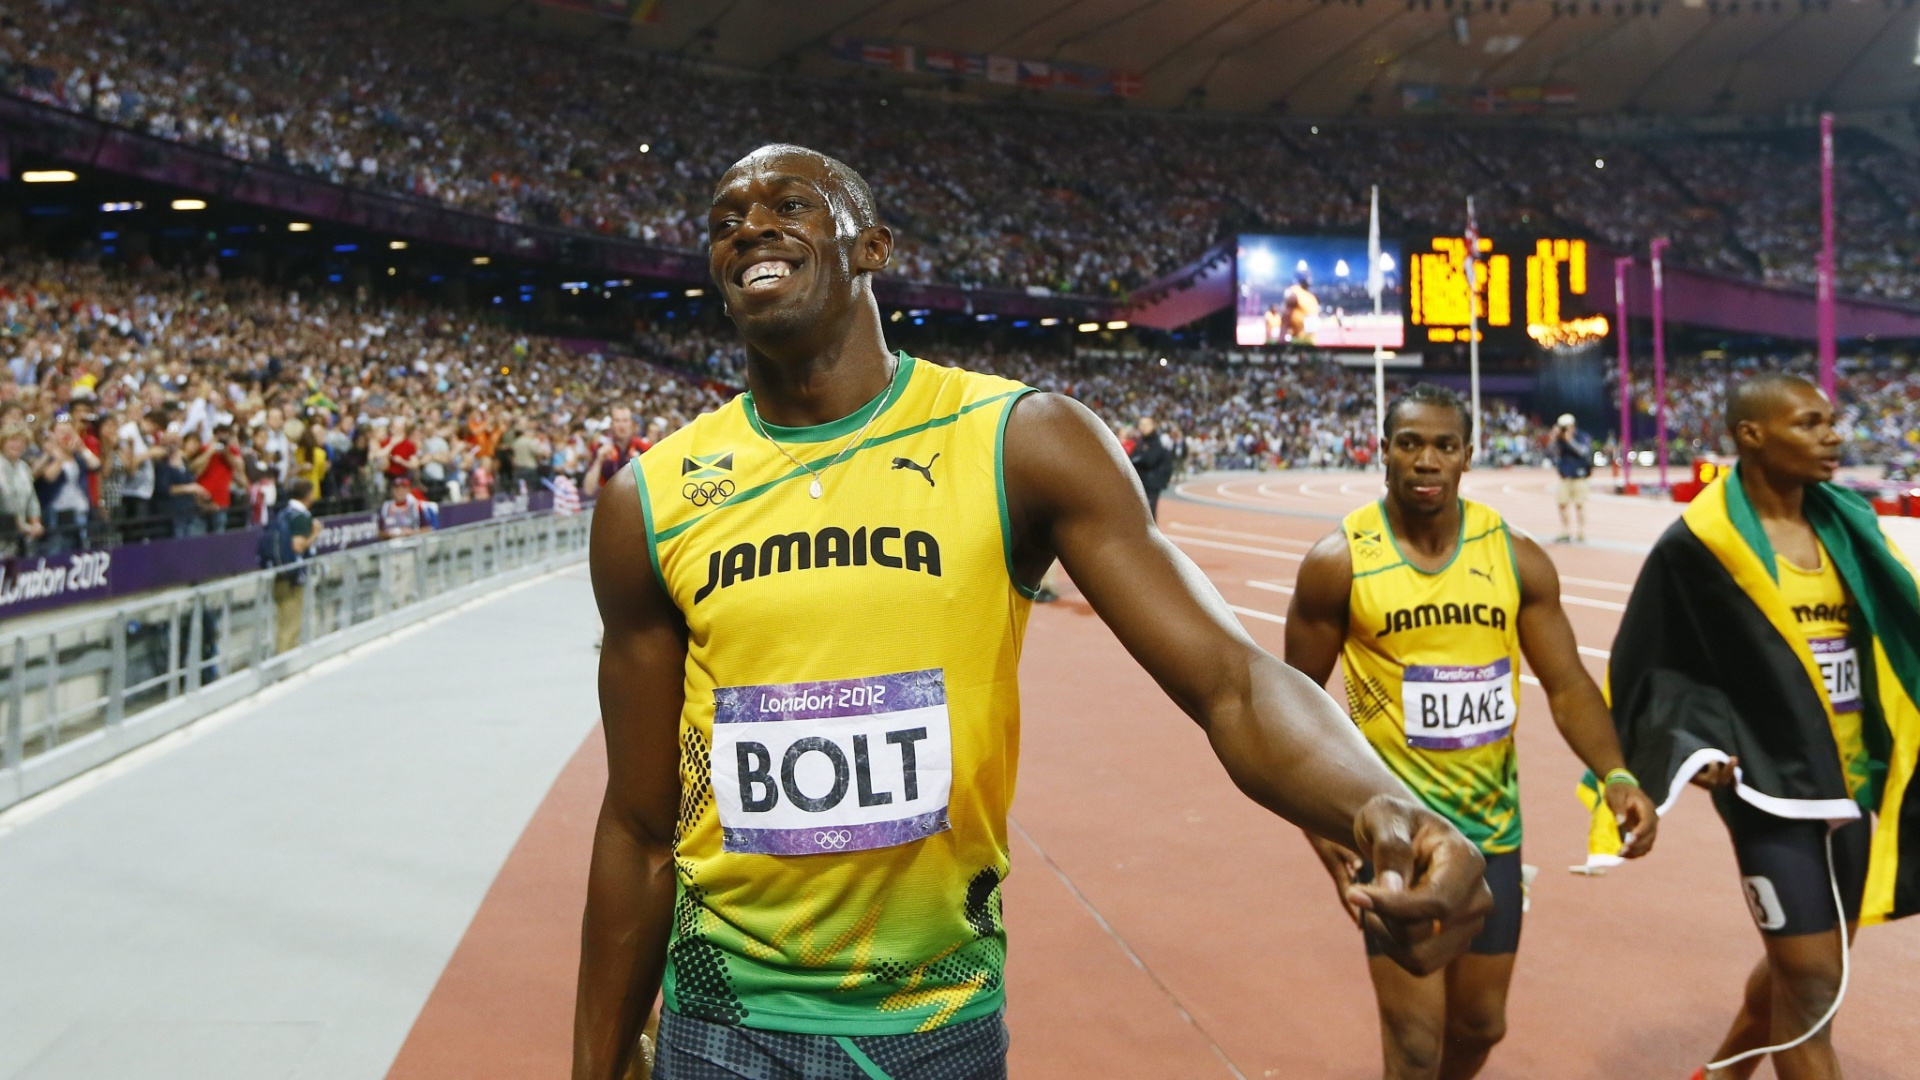 Usain Bolt, Yohan Blake e Warren Weir ficam com as trs primeiras posies nos 100 m rasos